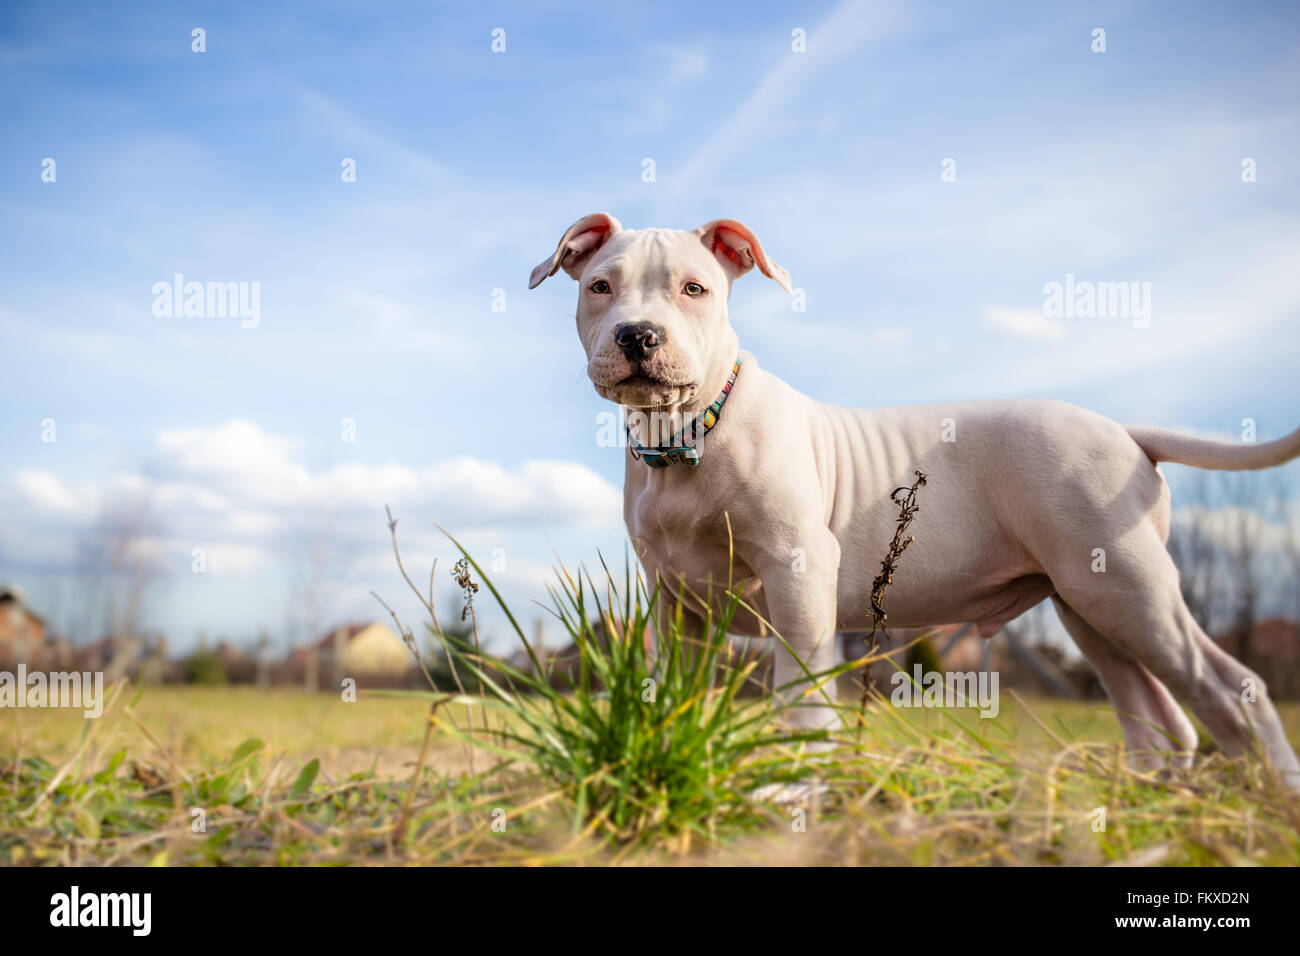 White American Staffordshire terrier puppy standing on grass Banque D'Images